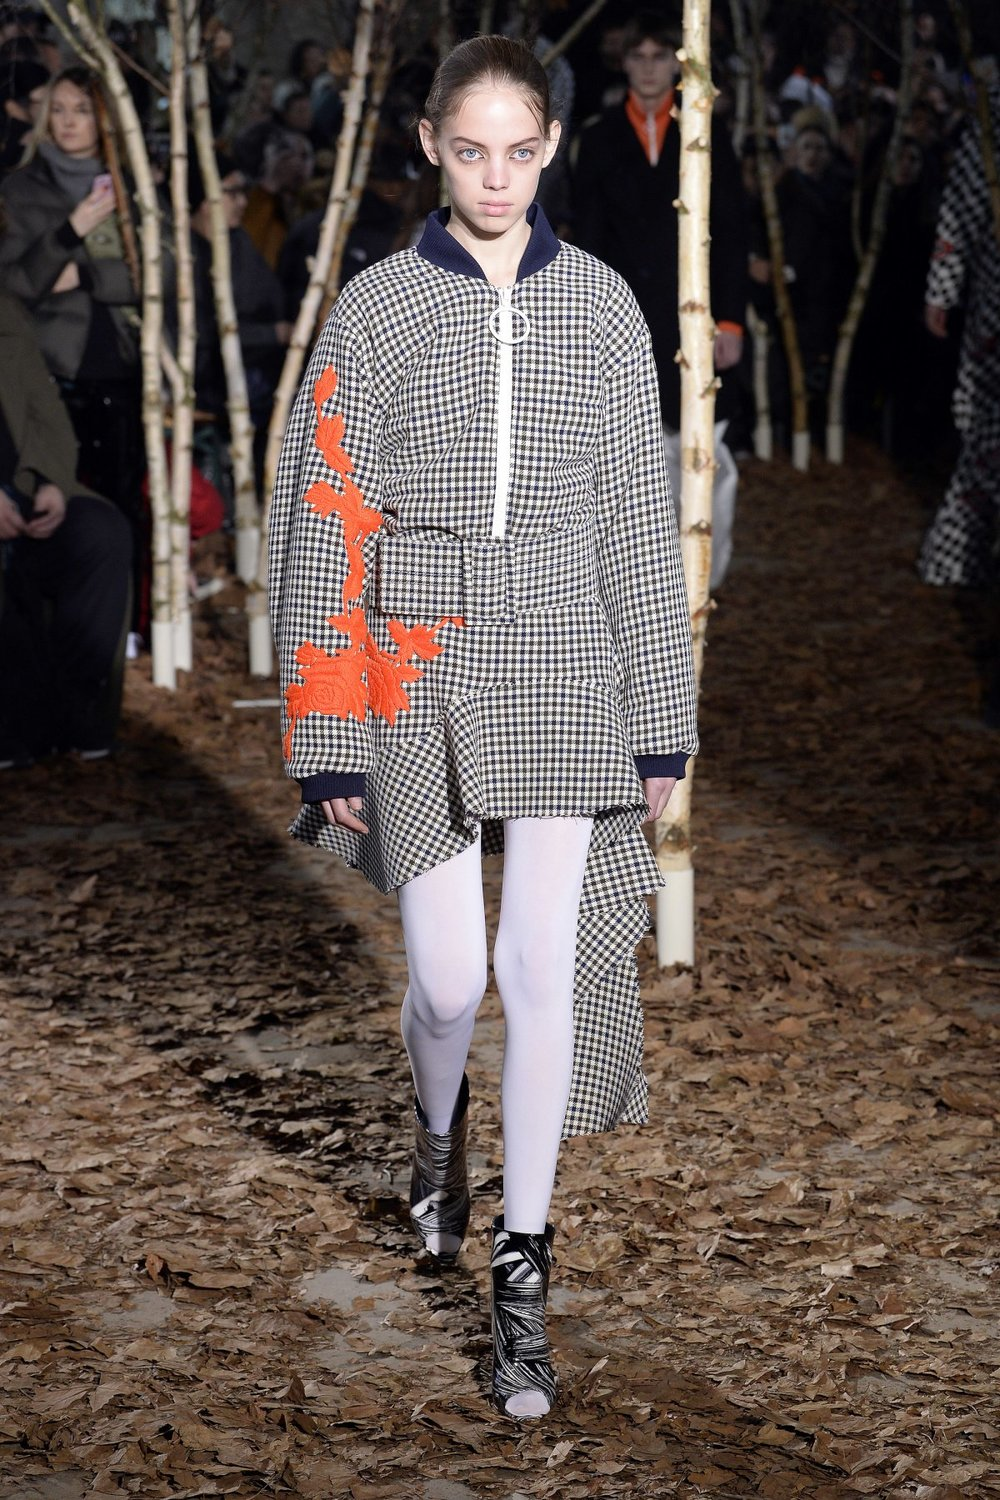 off_white_look_17_2017_aw_mens.jpeg